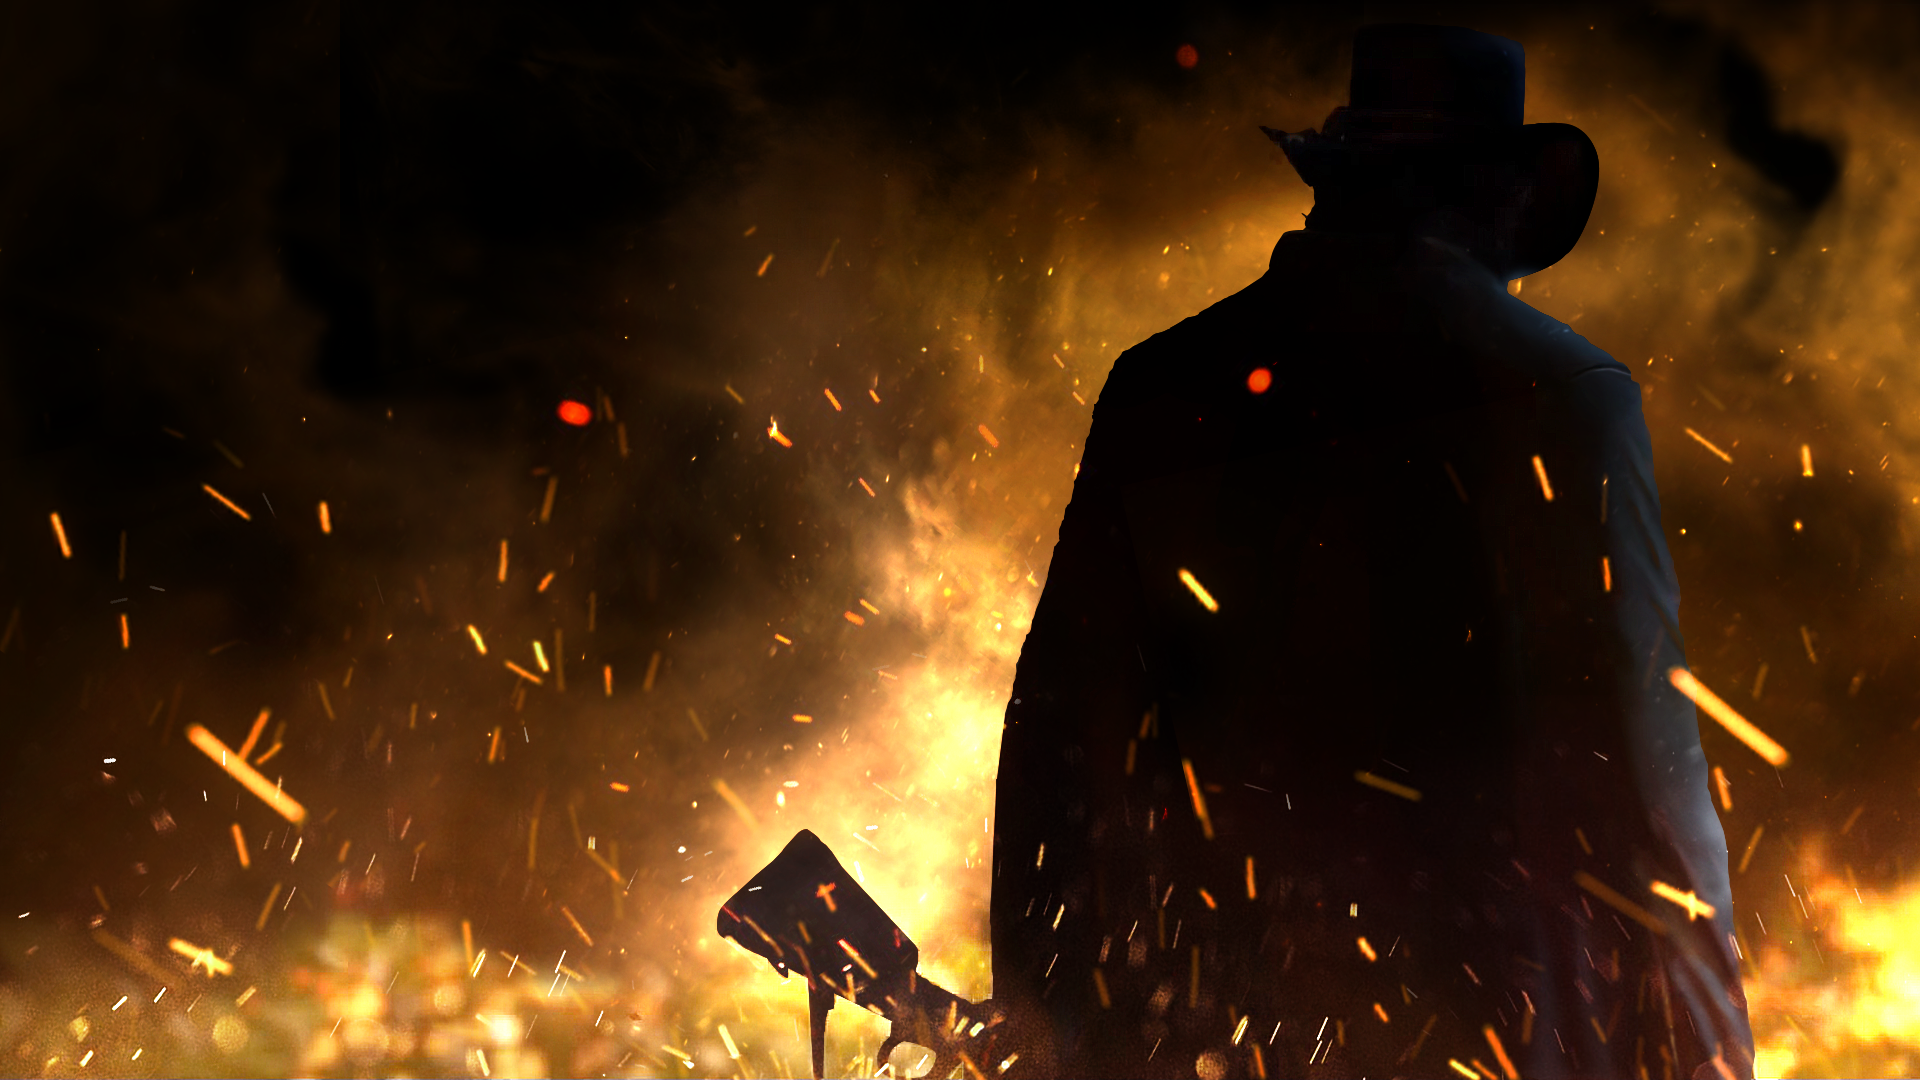 Red Dead Redemption 2 Wallpapers Hd Red Dead Redemption